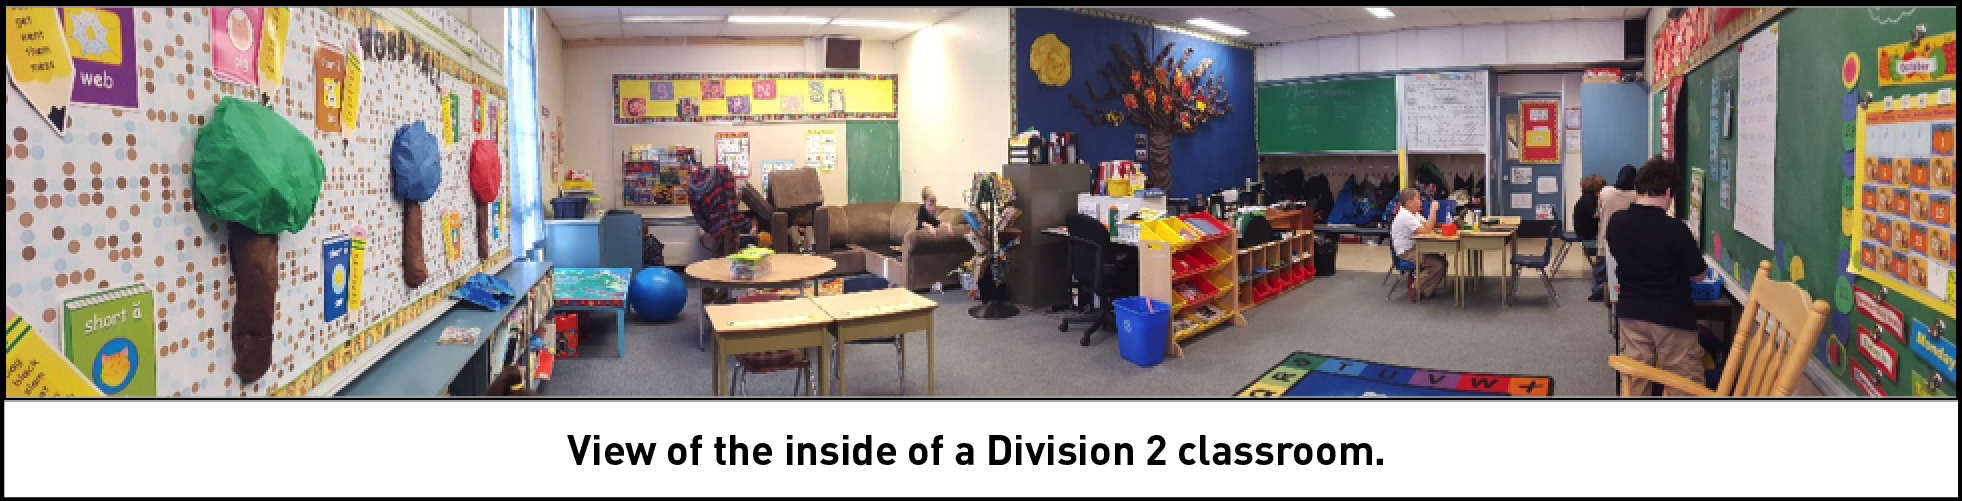 View of the inside of a Division 2 classroom